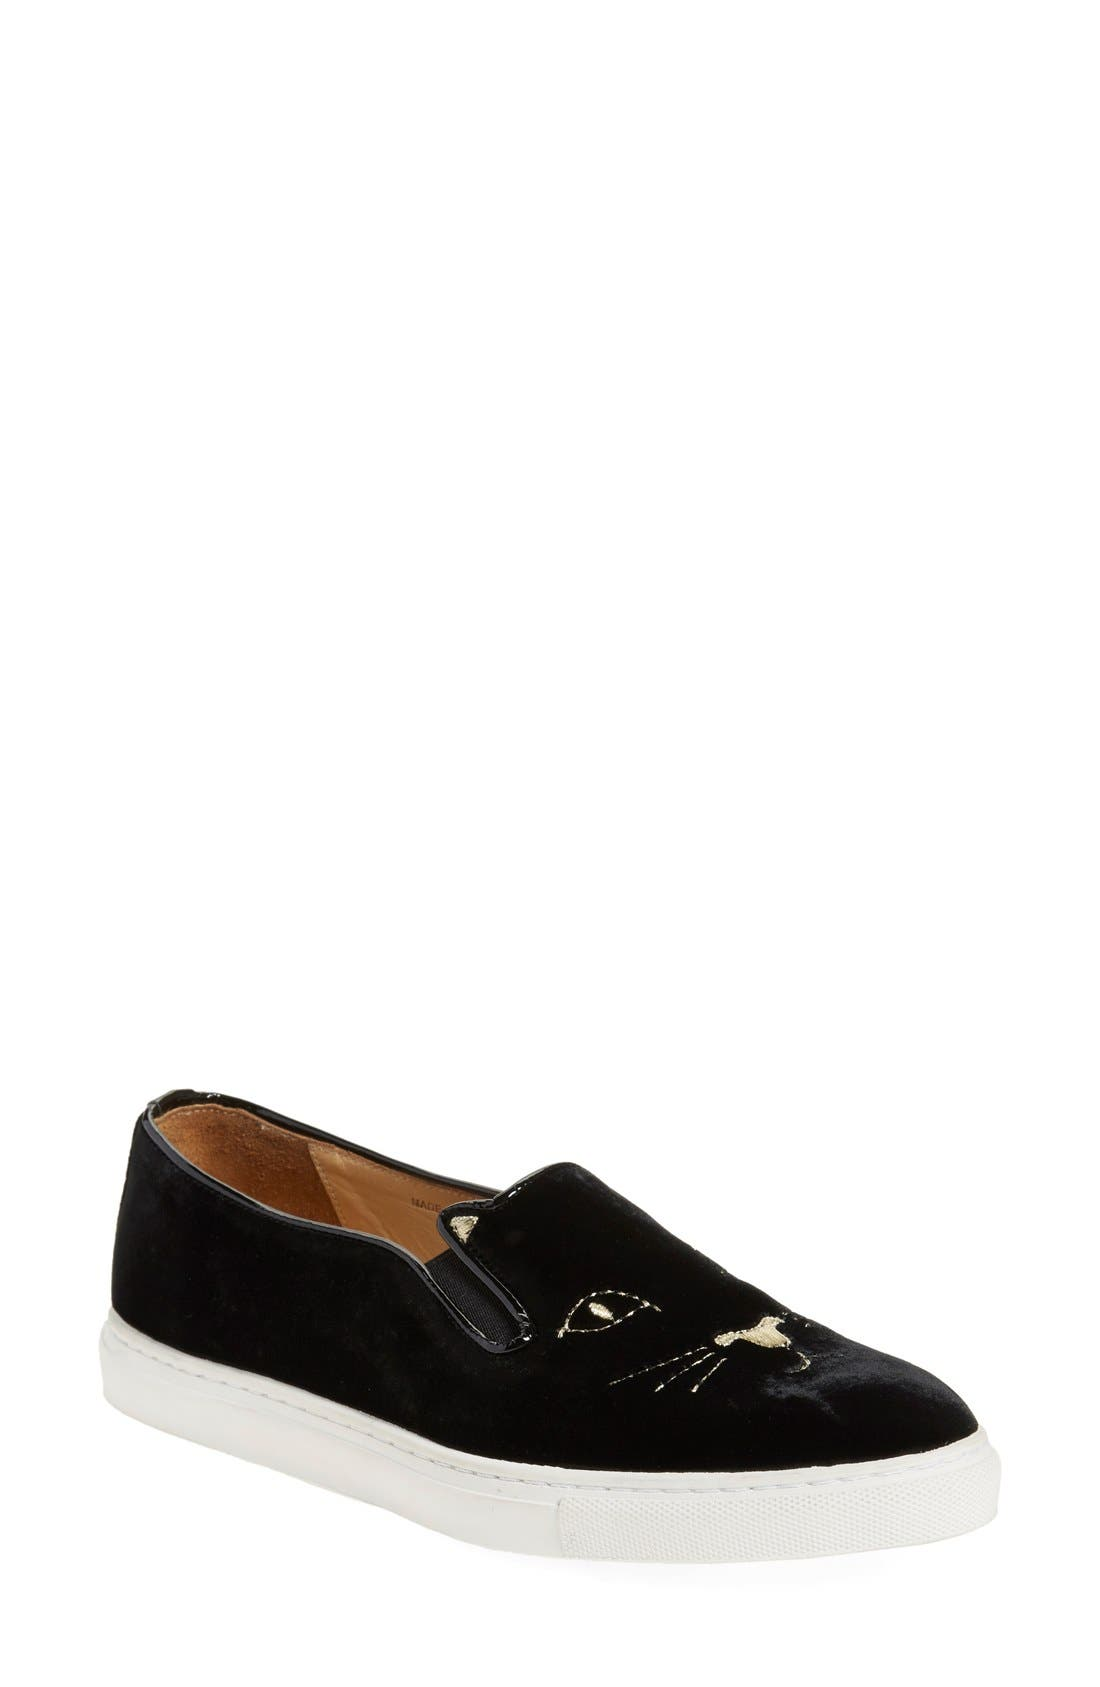 Charlotte Olympia Cool Cats Slip-On Sneaker (Women)